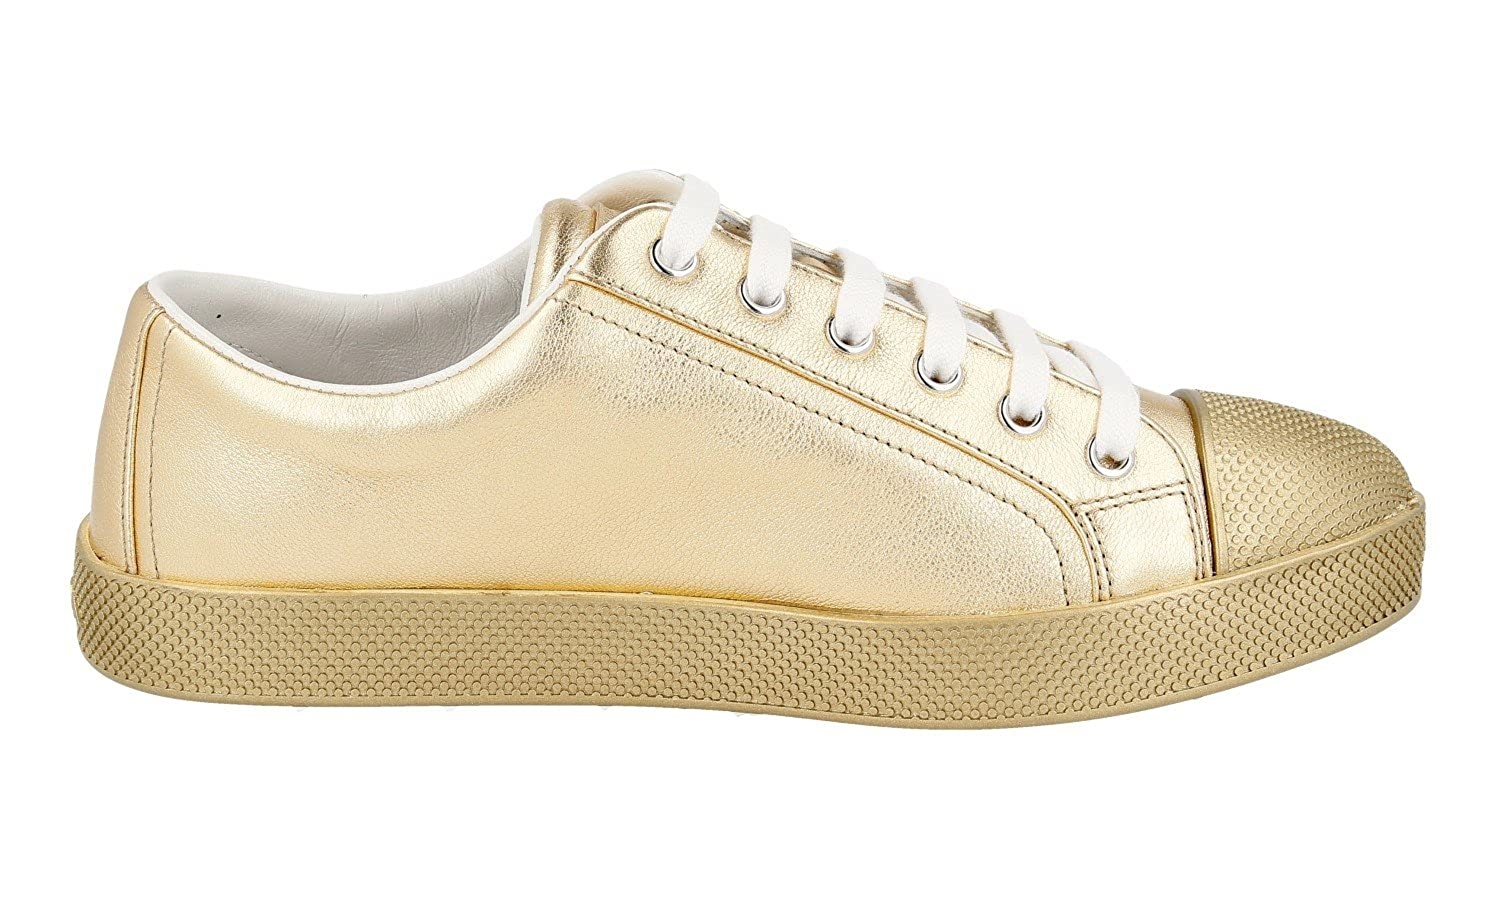 444def051f2 Prada Women s 3E6202 FCL F0522 Leather Trainers Sneaker  Amazon.co.uk  Shoes    Bags